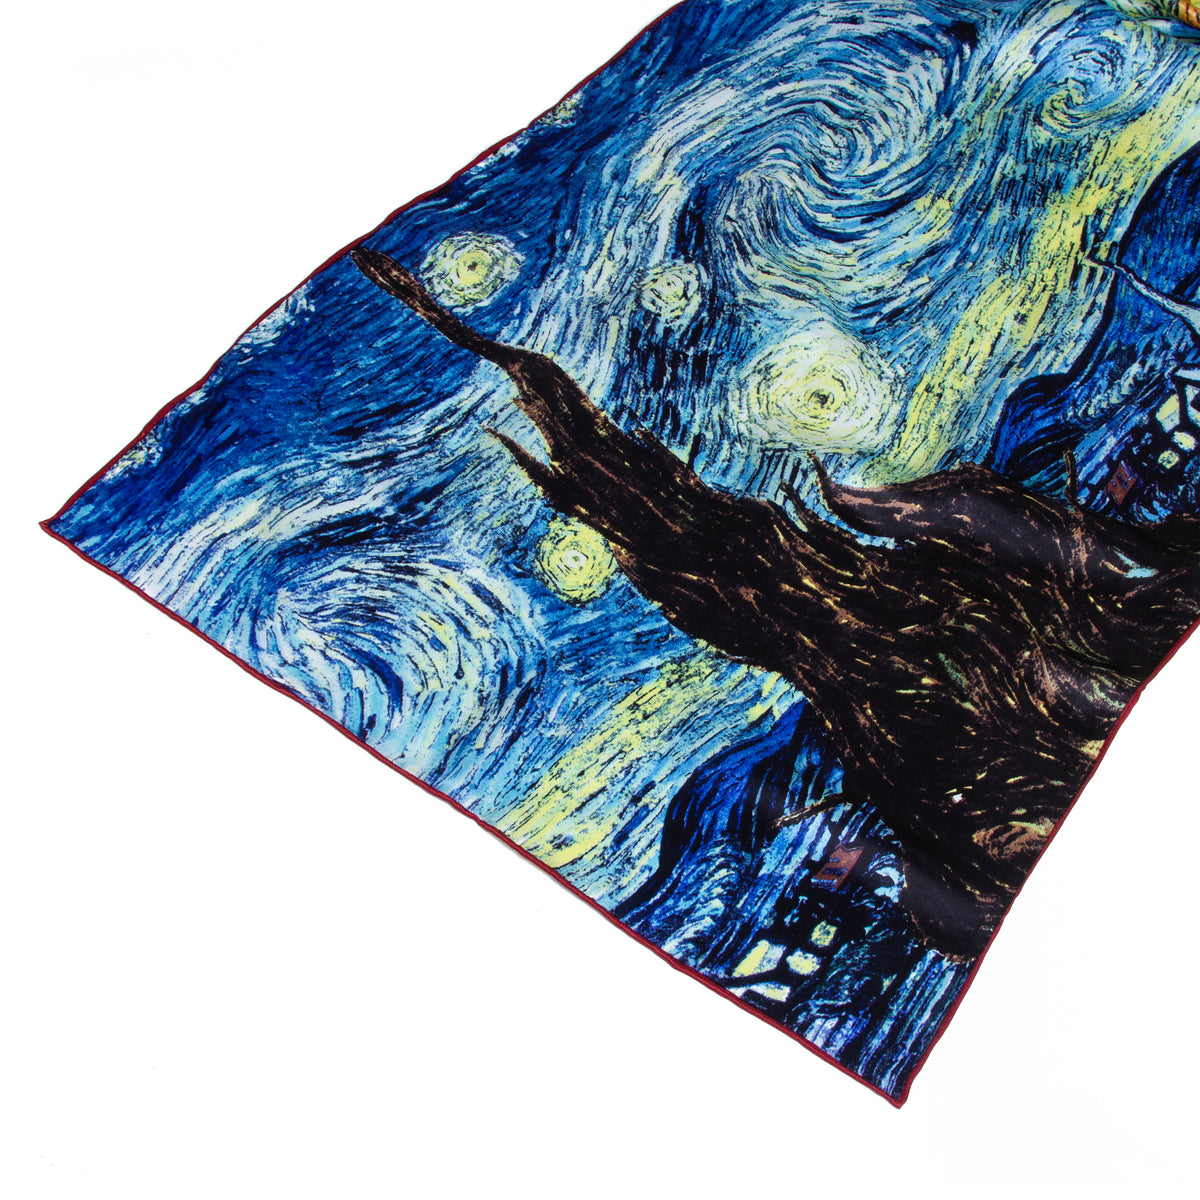 Van Gogh The Starry Night Silk Scarf- Detail shown | Getty Store